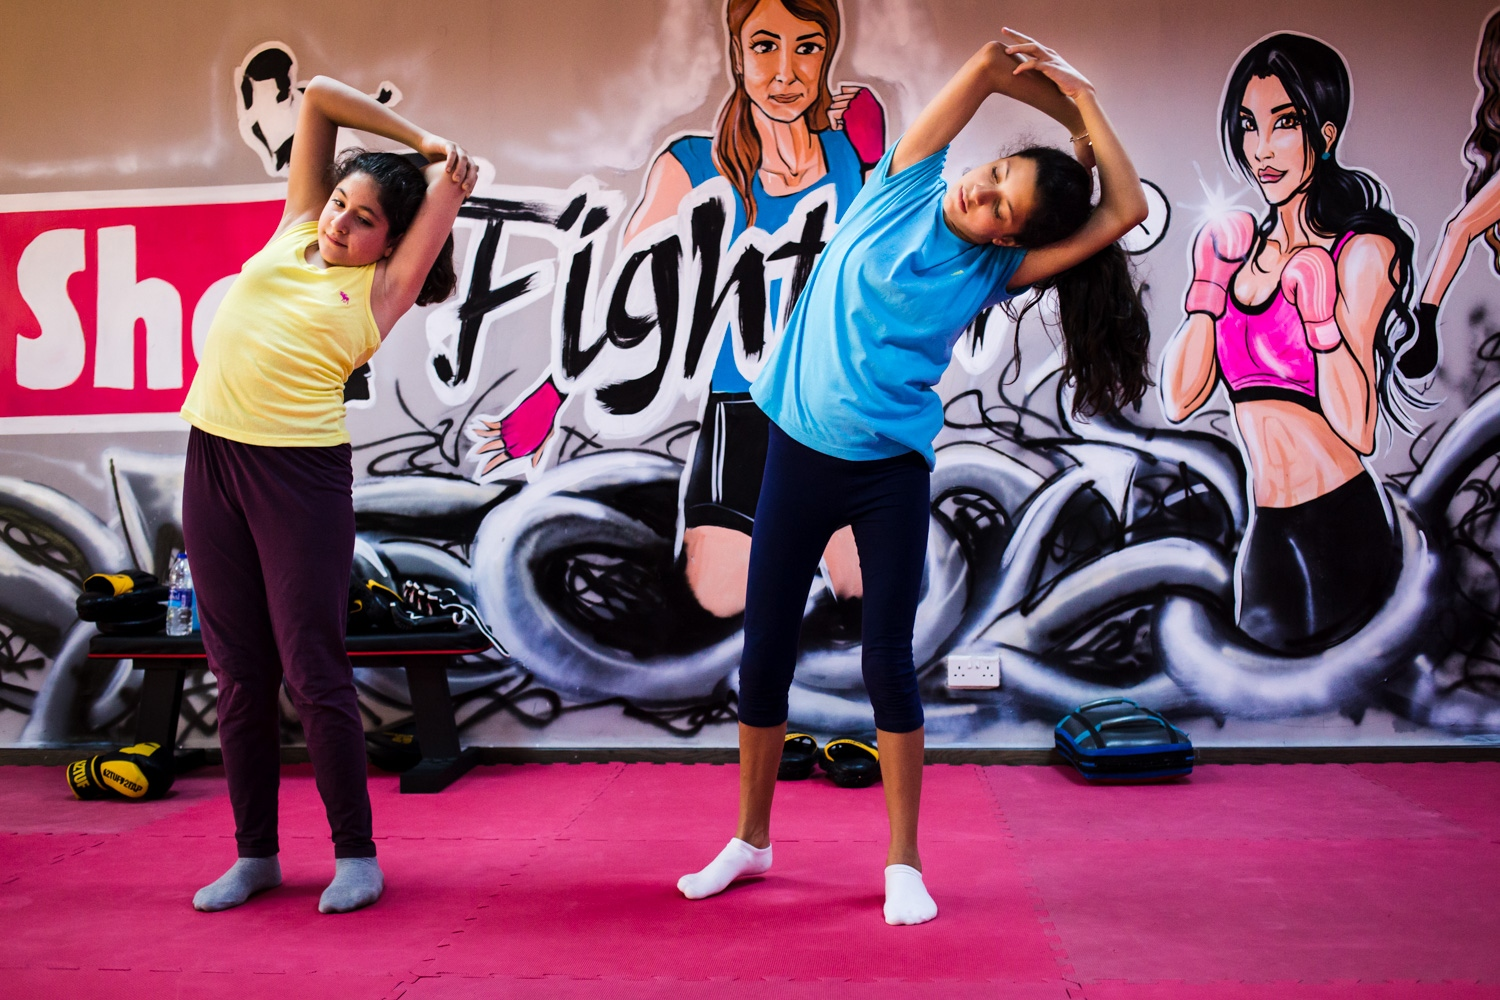 Sana Kayyali and Reem Habib stretch and do yoga poses in between kicking and punching exercises during a self defense class at She Fighter in Amman, Jordan, on August 21, 2015. The She Fighter studio was founded by Lina Khalifeh, and offers self defense classes to young women to protect against harrassment.